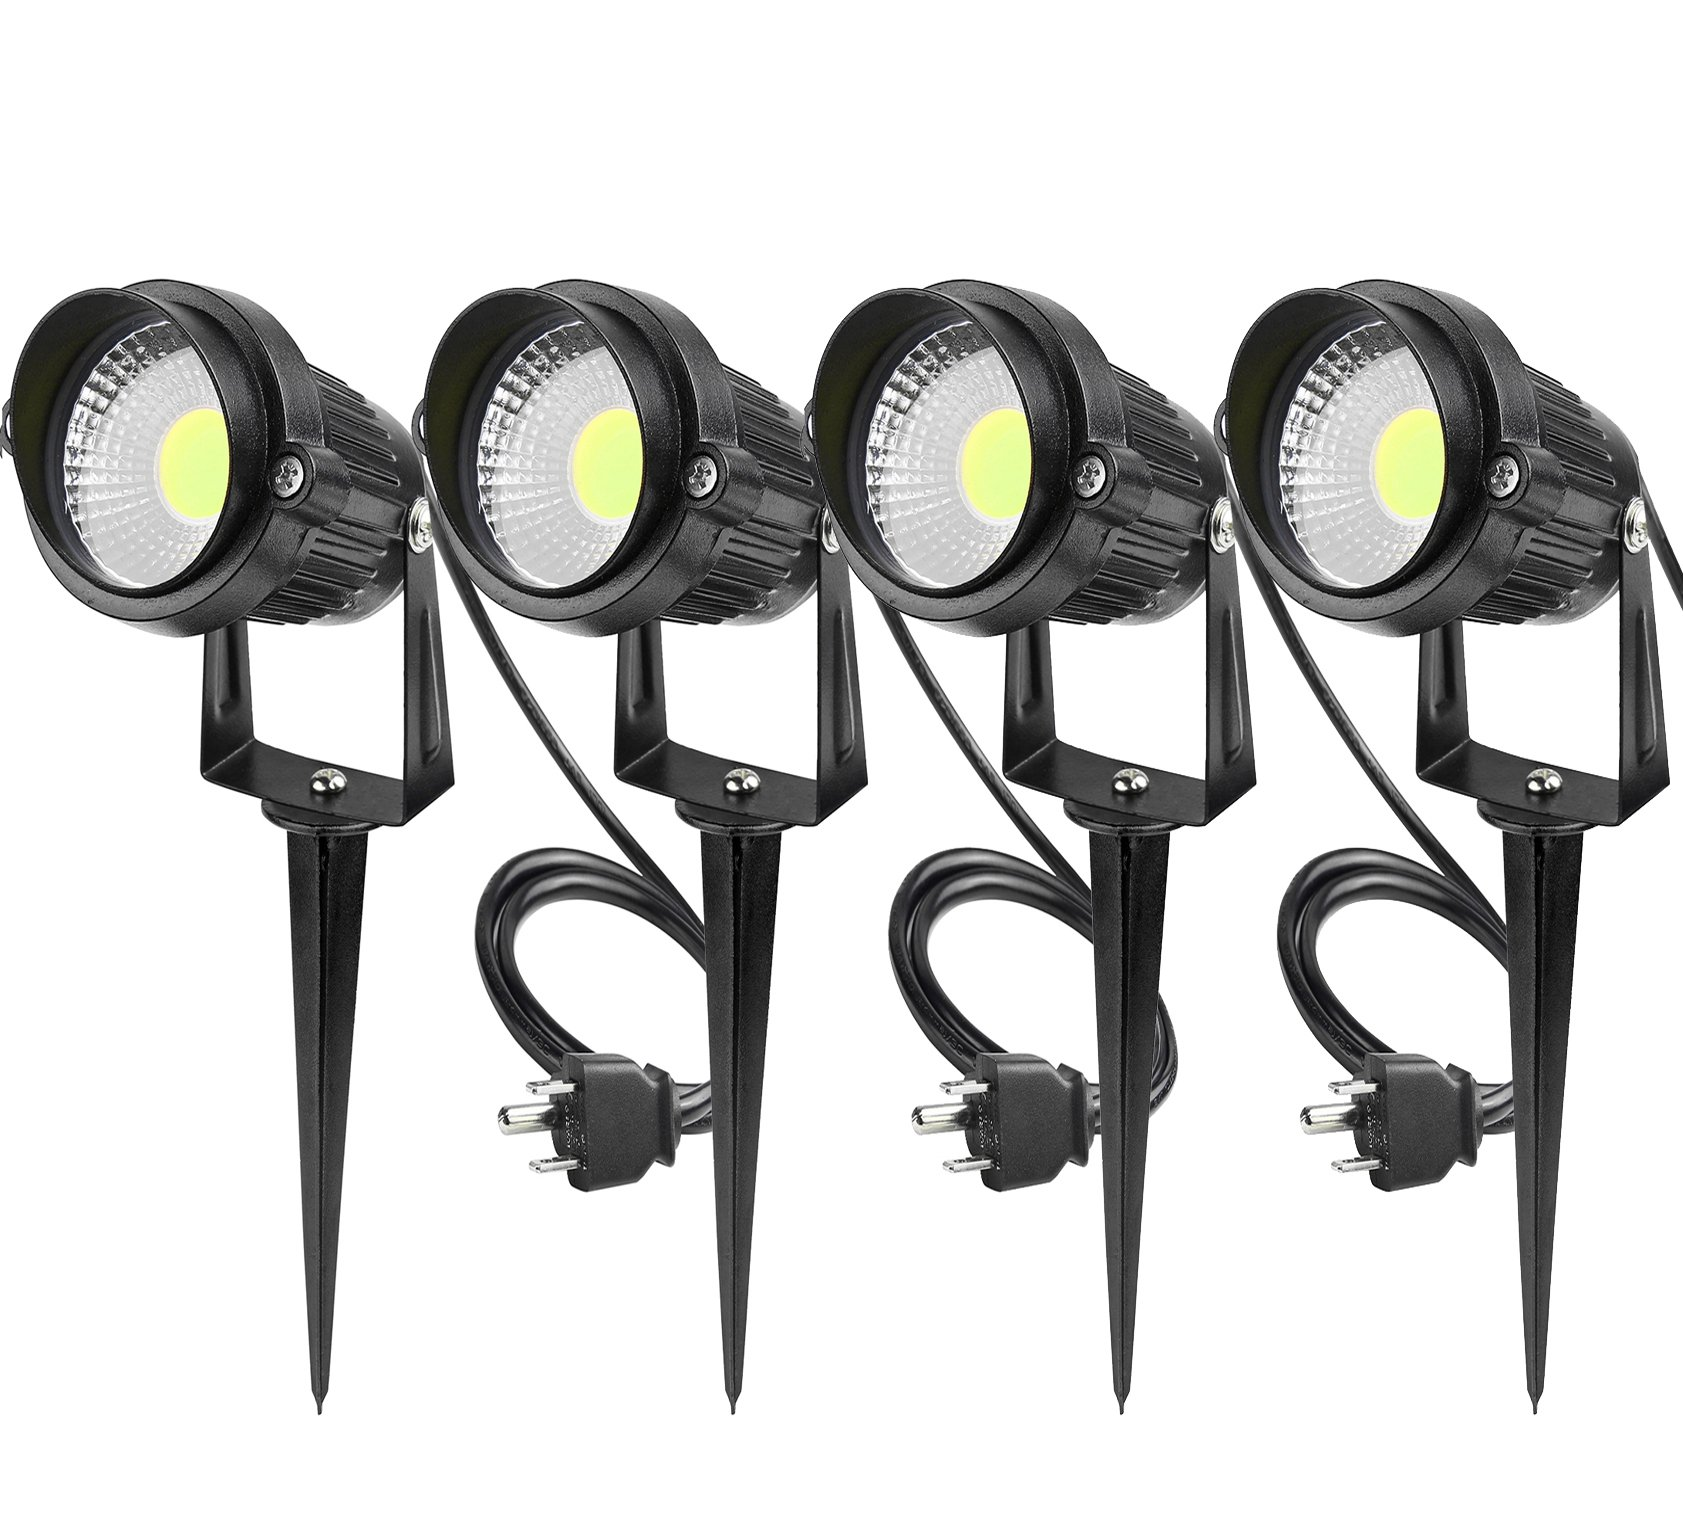 LemonBest Outdoor Garden LED Landscape Lamps Lighting 5W LED Wall Yard Path Lawn Lights Spiked Stand w/AC power plug Cool White, Pack of 4